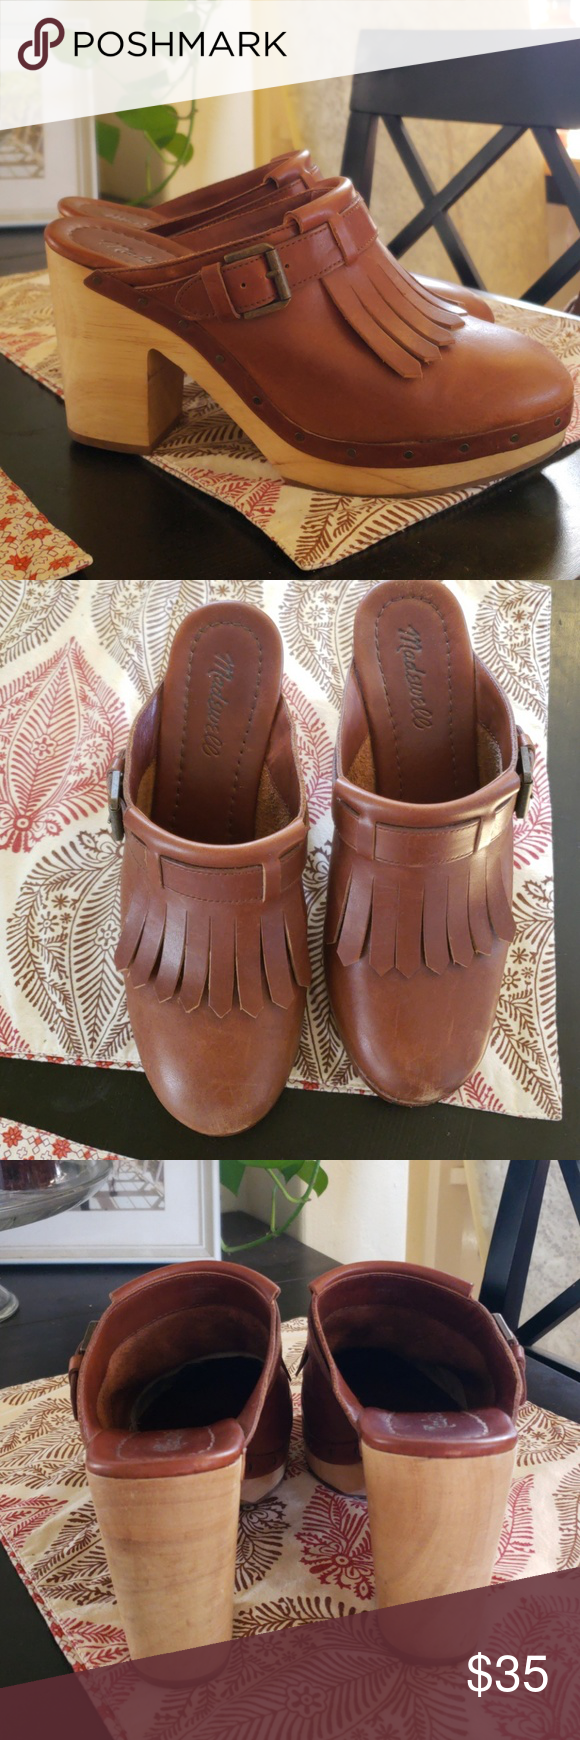 4d7a18308b16 Madewell Classic Clog Madewell the classic clog is made of rich leather